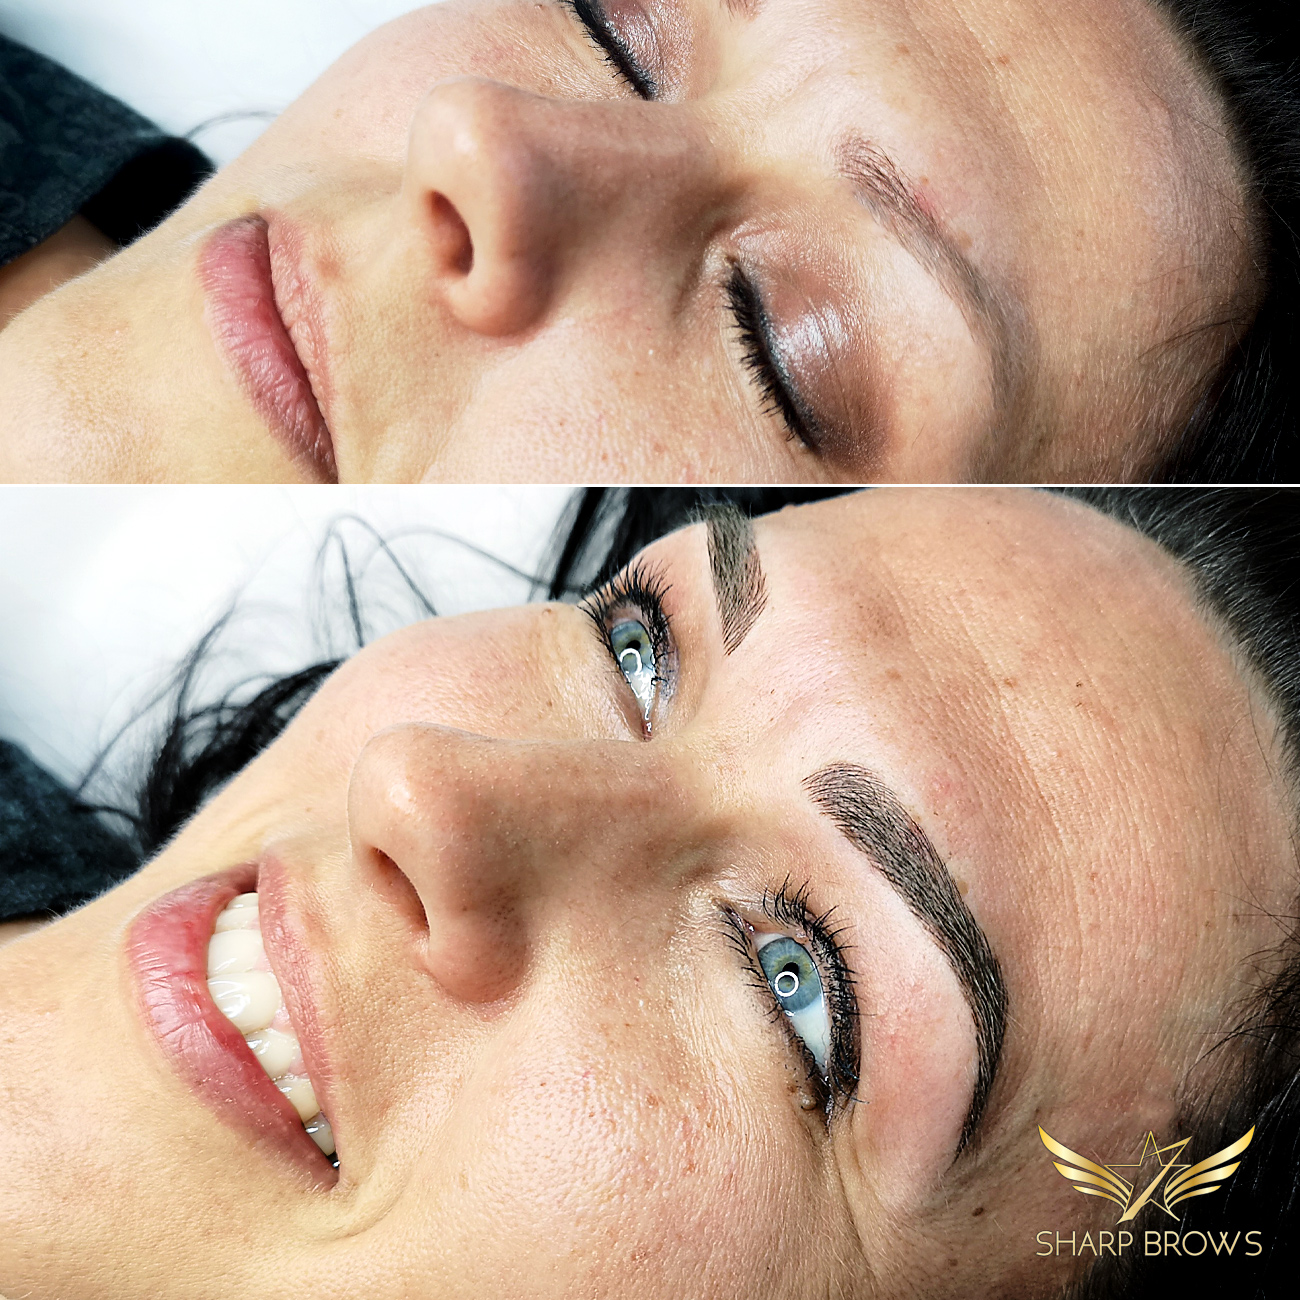 Light microblading. The client changed totally as a result of the procedure: facial expression, overall look, everything.